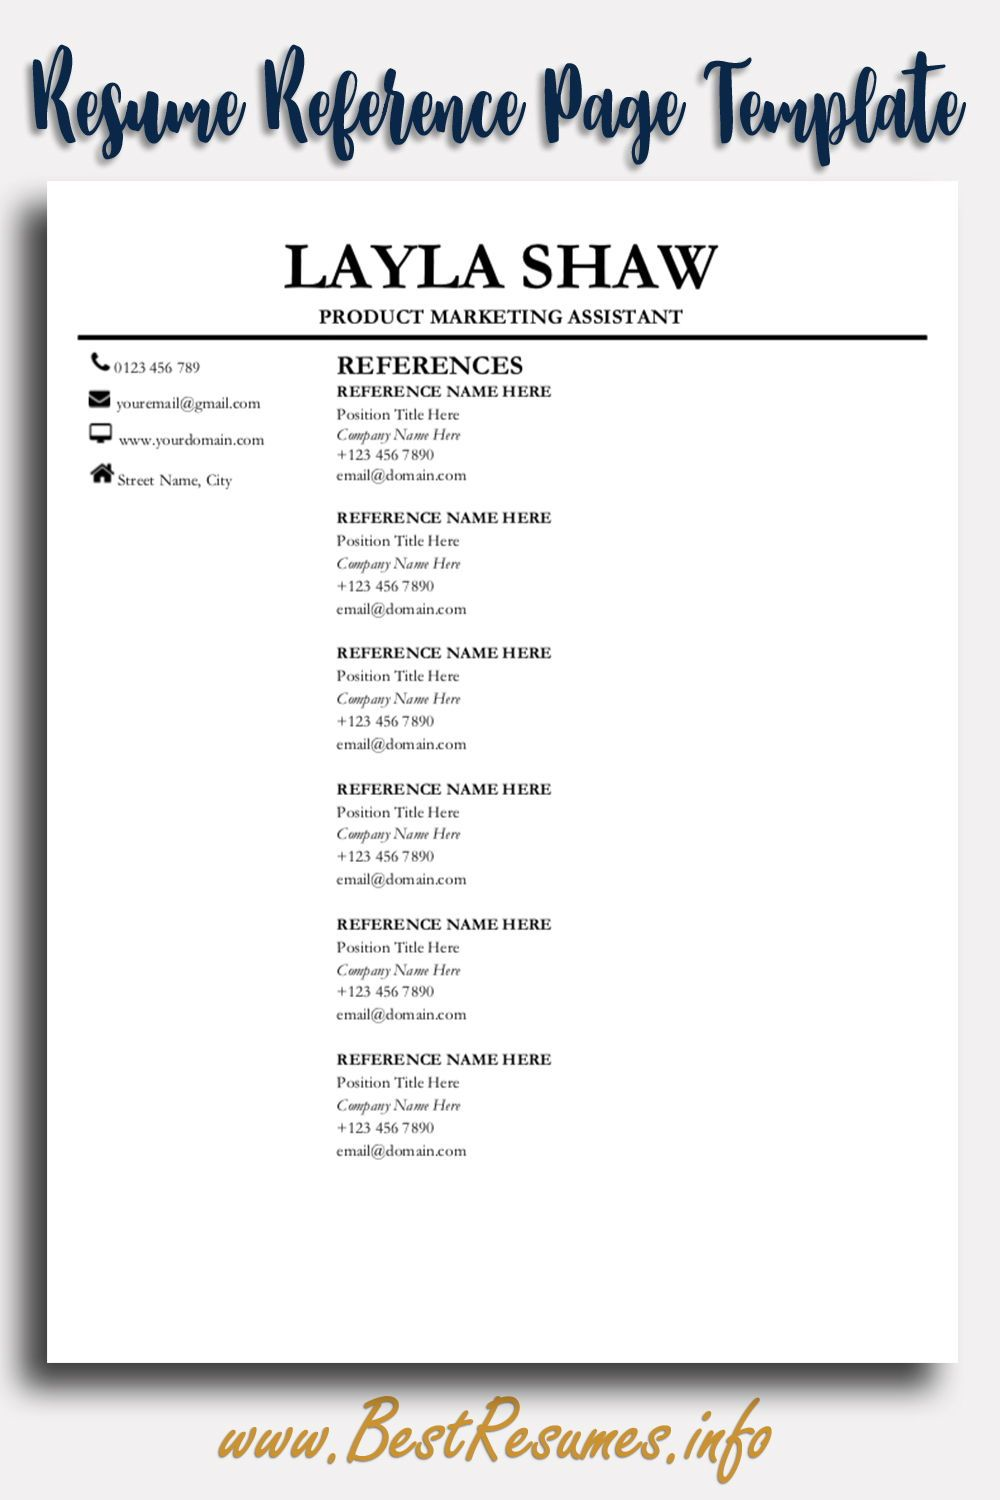 Professional Resume Template Layla Shaw Reference Page For